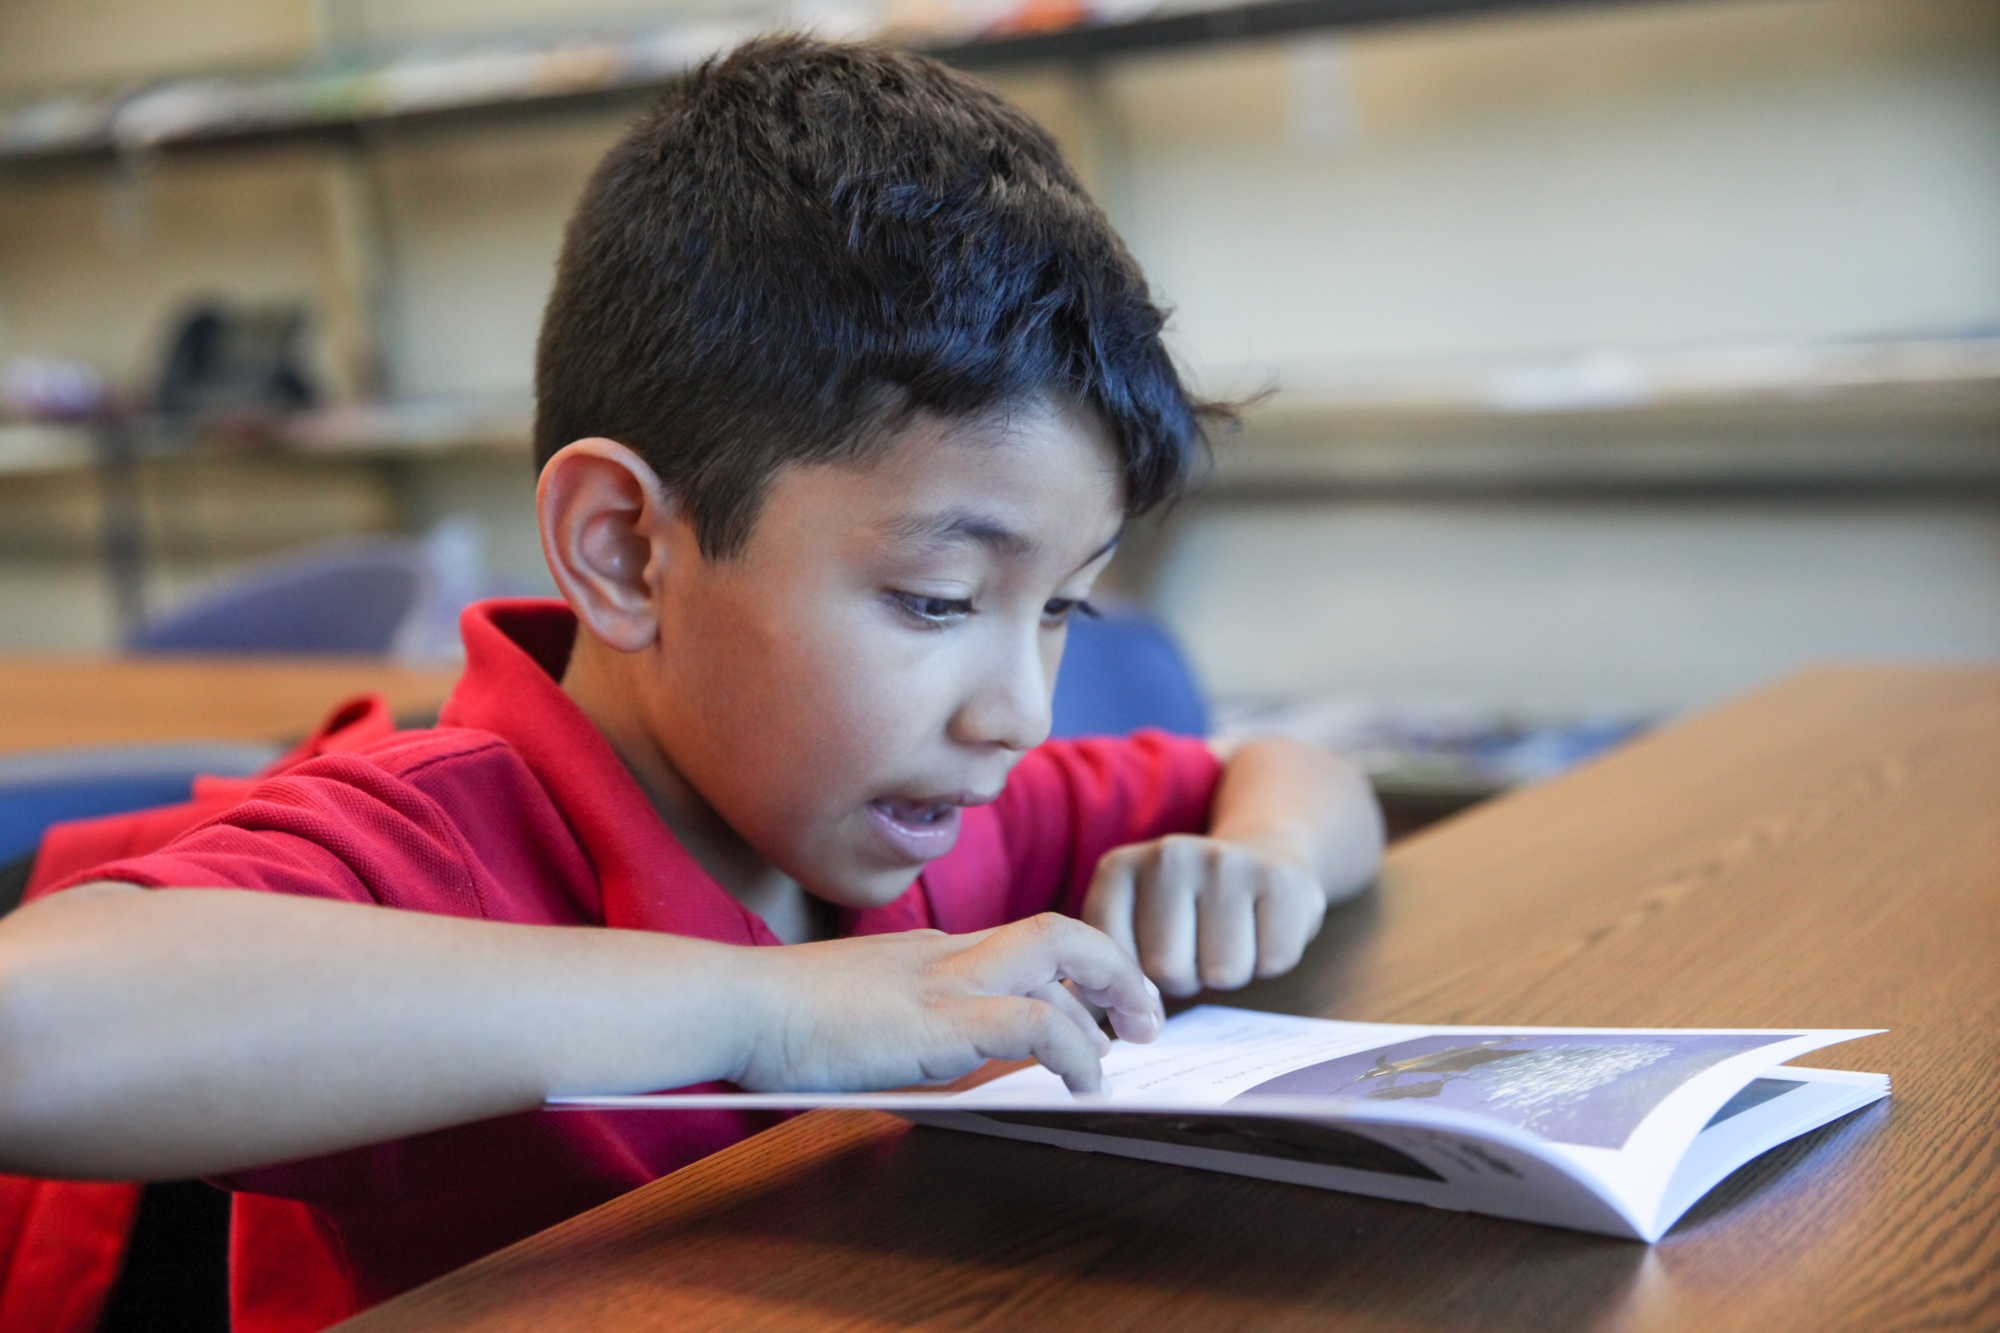 Joshua Pineda participates in a reading exercise during a tutoring session at the Boys & Girls Clubs of Capistrano Valley. Photo: Allison Jarrell